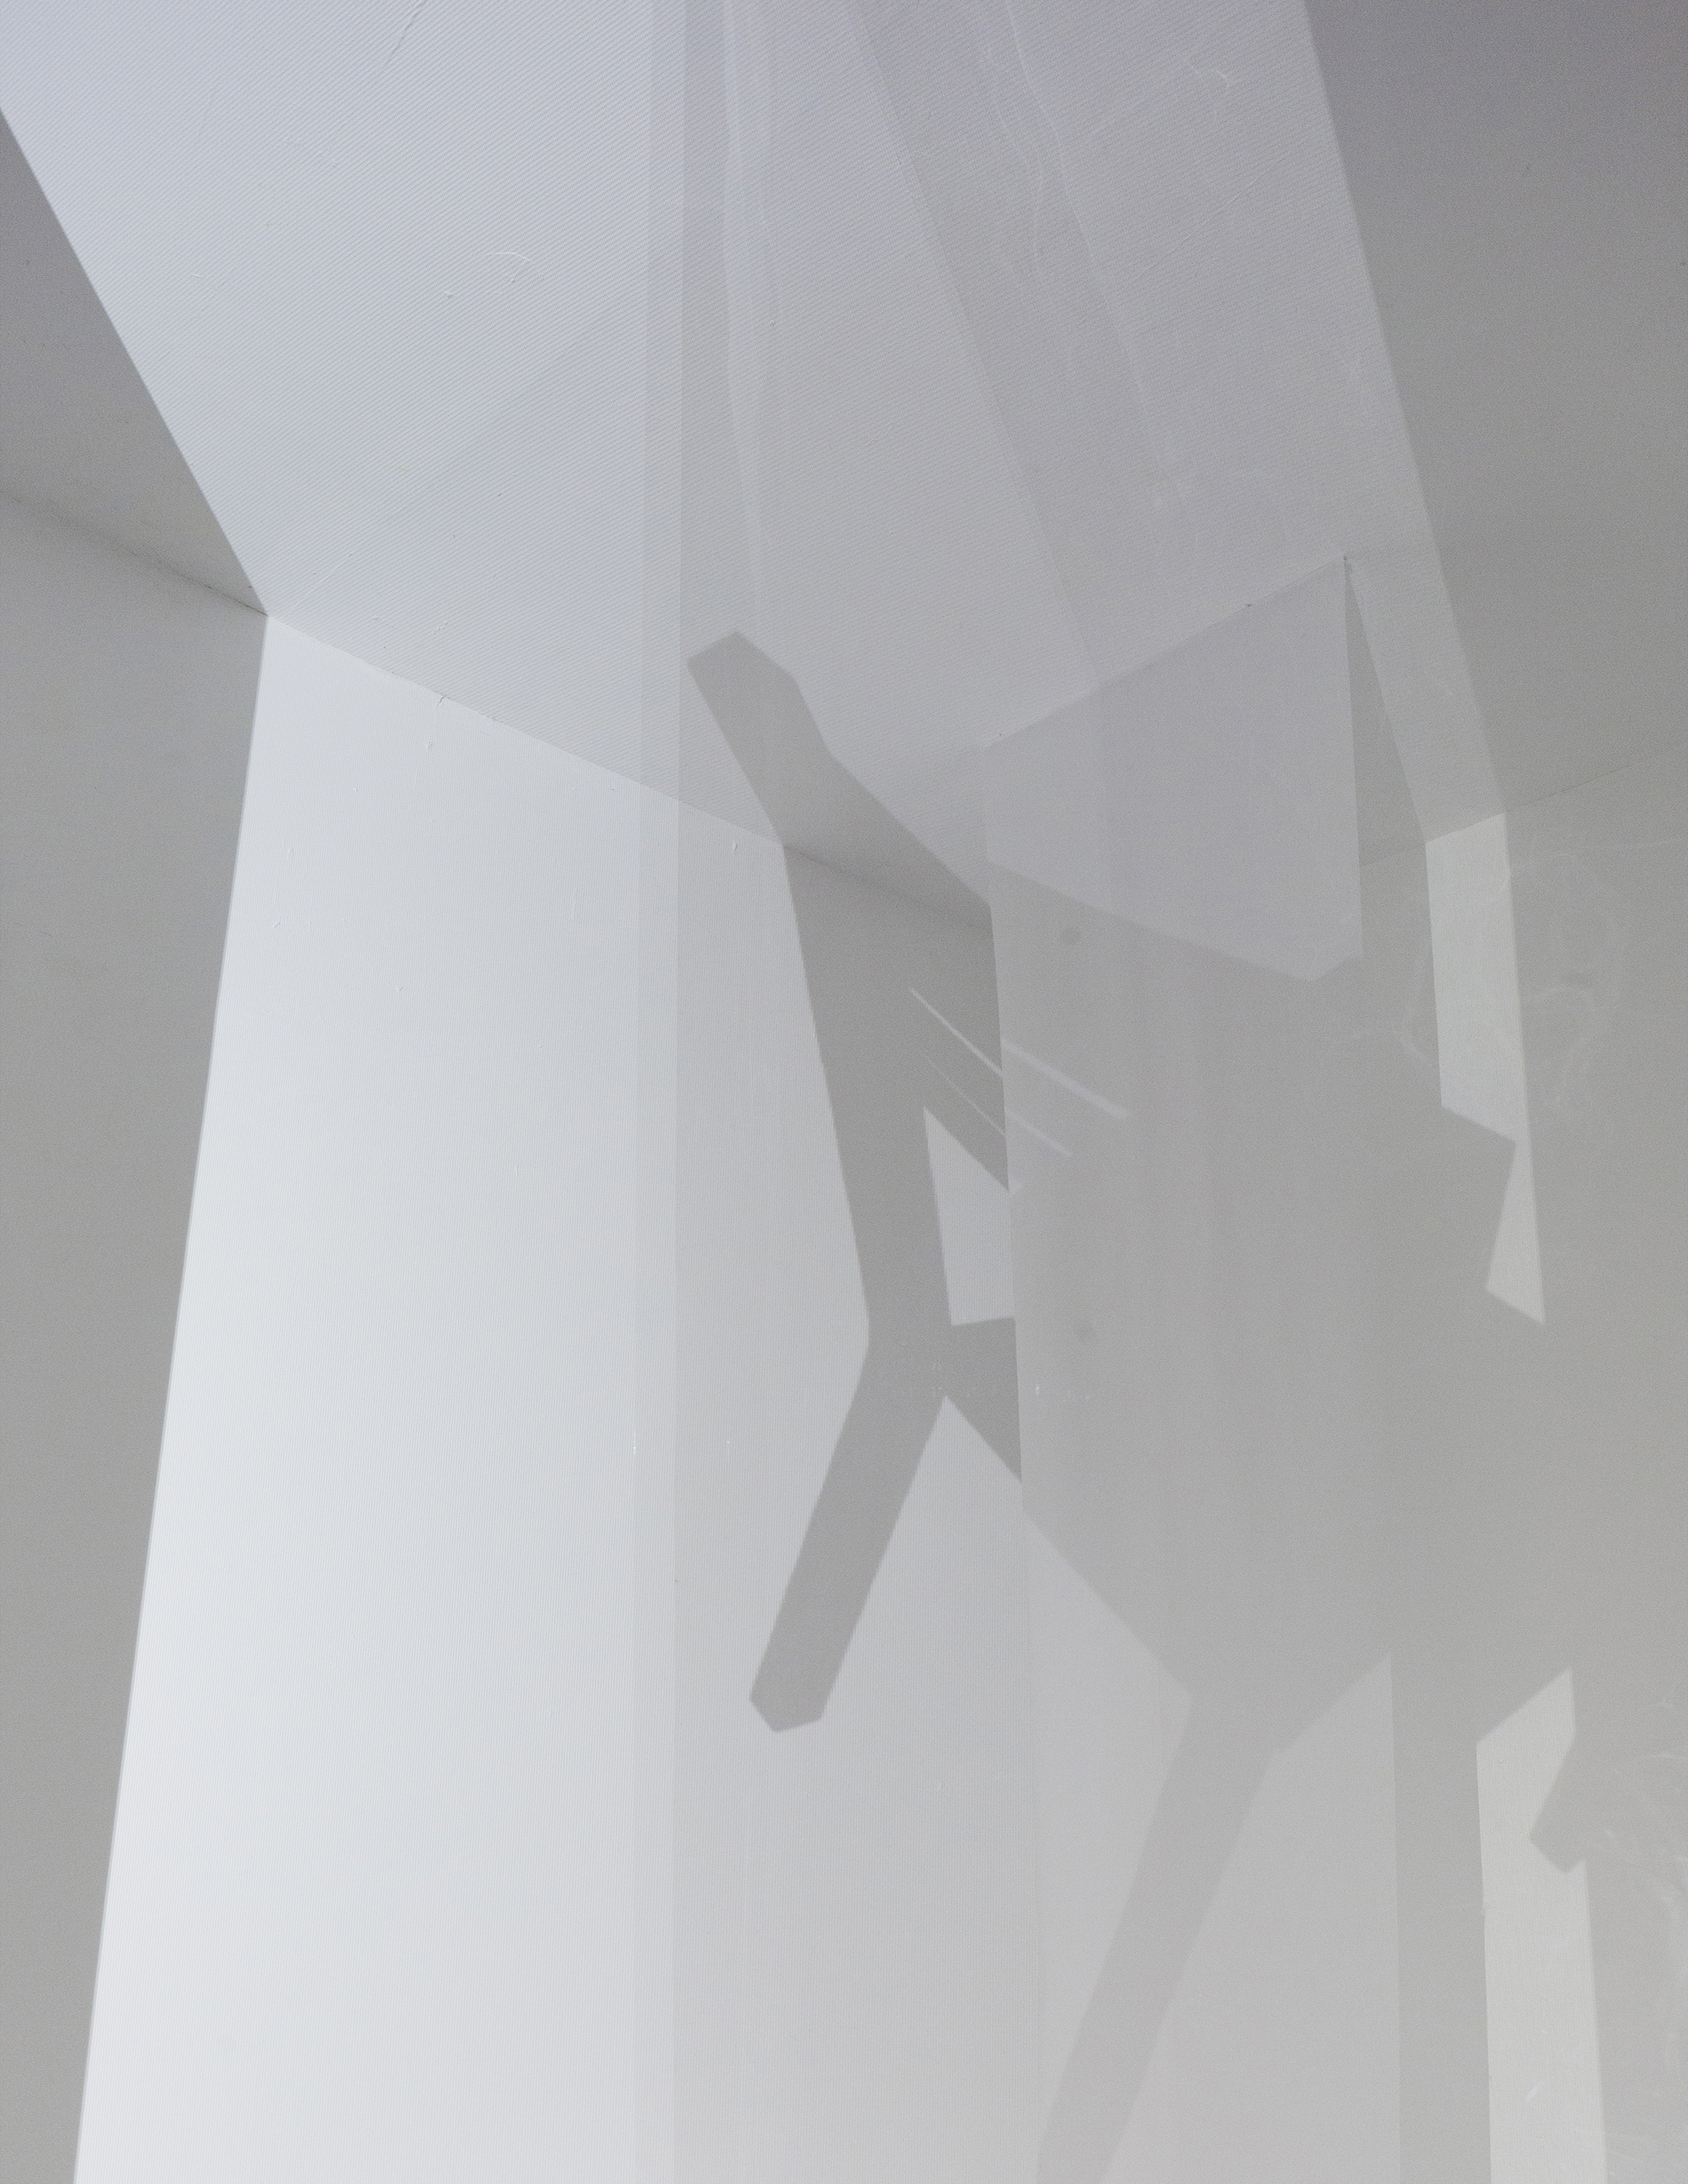 """The animation of a shadow of the chair thrown into space traverses the space on an infinite loop, crossing from one corner through the viewer and to the opposite corner. The chair passes through states of dimensionality: shadow on the screens, getting closer to the center of the room, disappearing when it """"flies"""" through the room therefore existing only in the viewer's mind and reappearing on the opposite side of the room only to diminish and fly off into the void."""